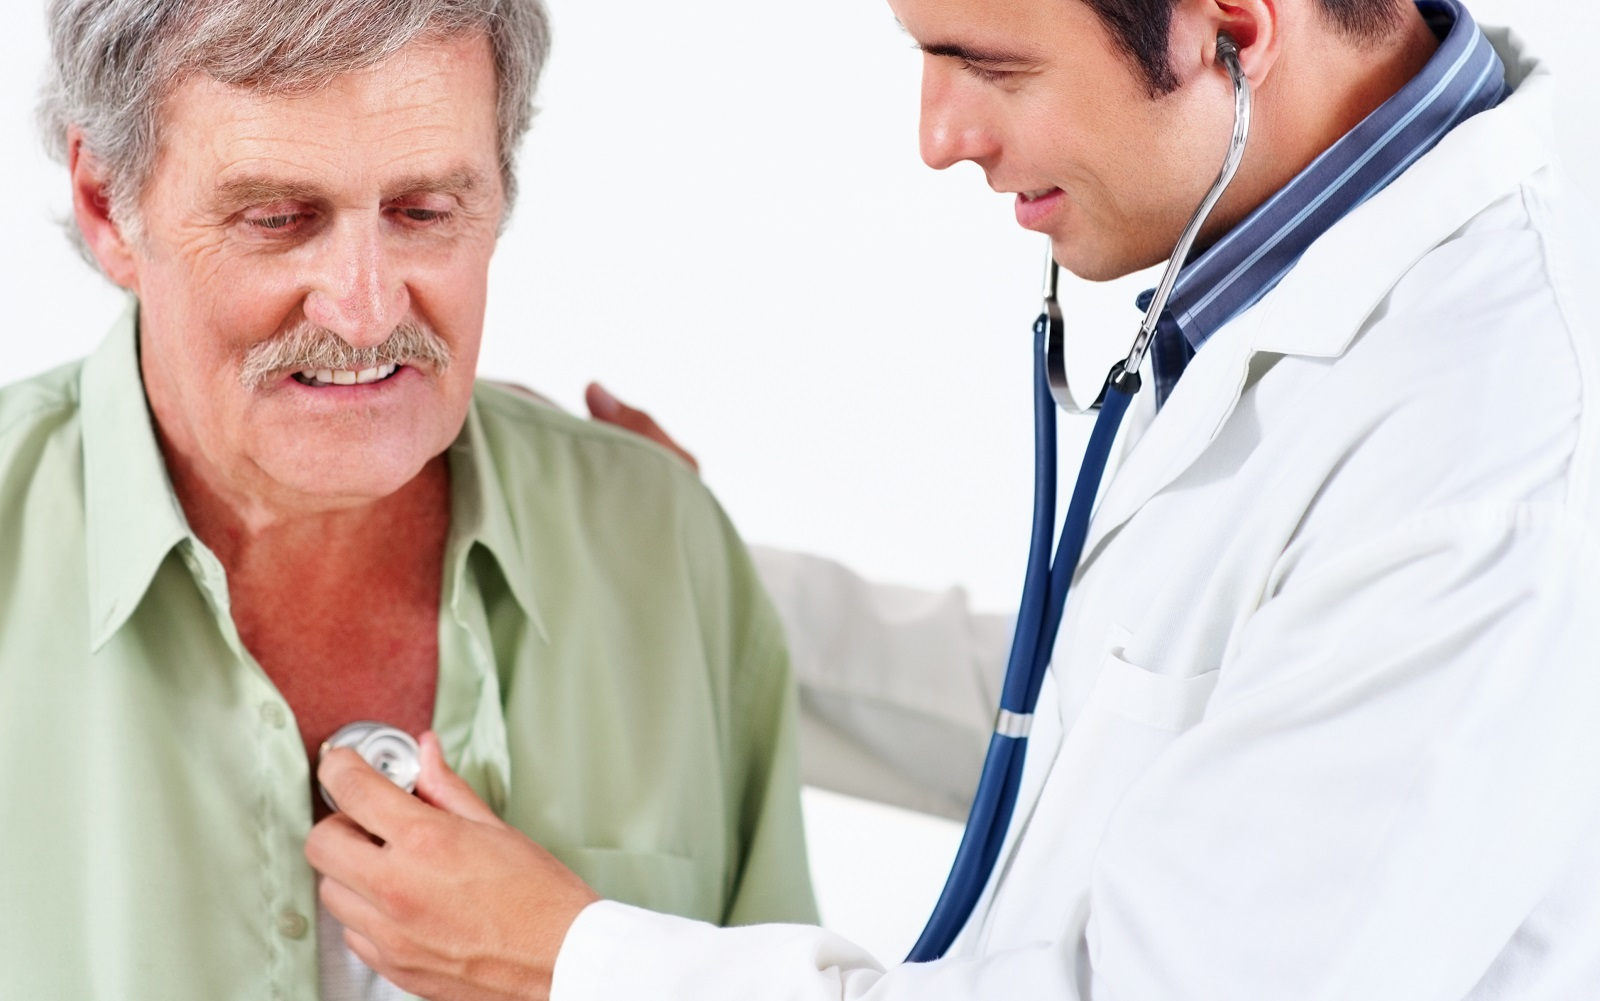 A male doctor listening to a senior man's chest with a stethoscope.